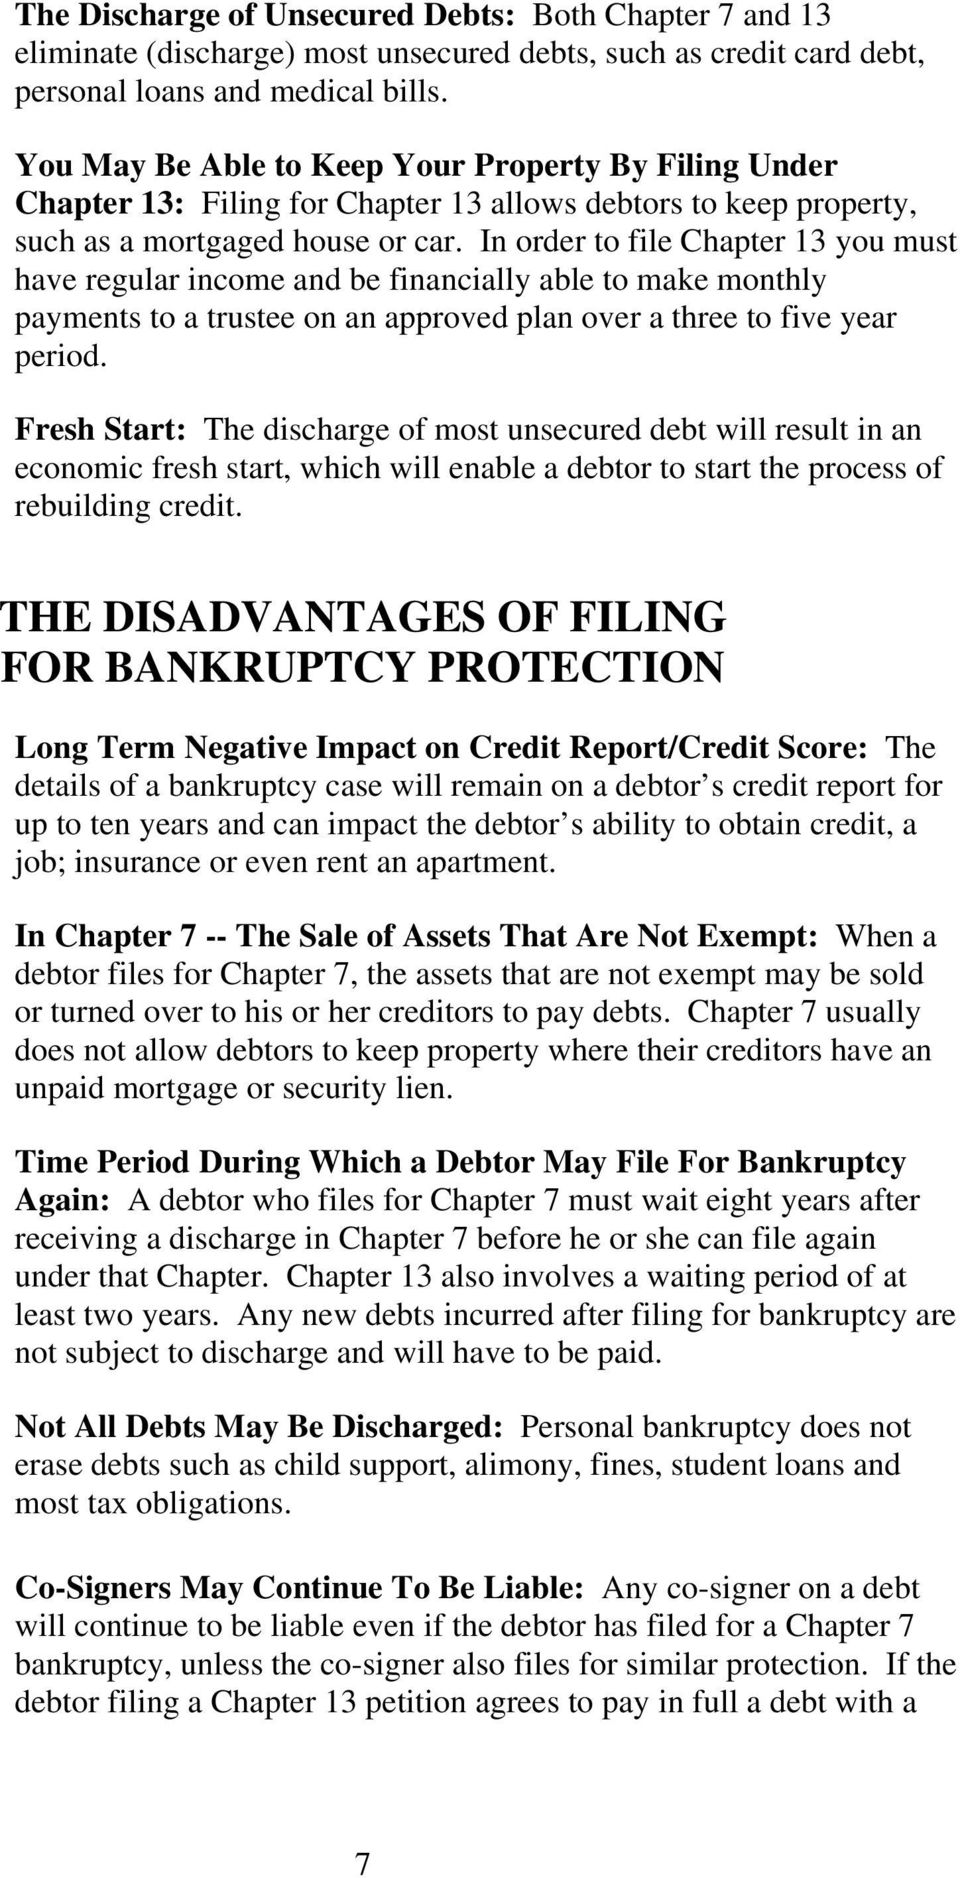 In order to file Chapter 13 you must have regular income and be financially able to make monthly payments to a trustee on an approved plan over a three to five year period.